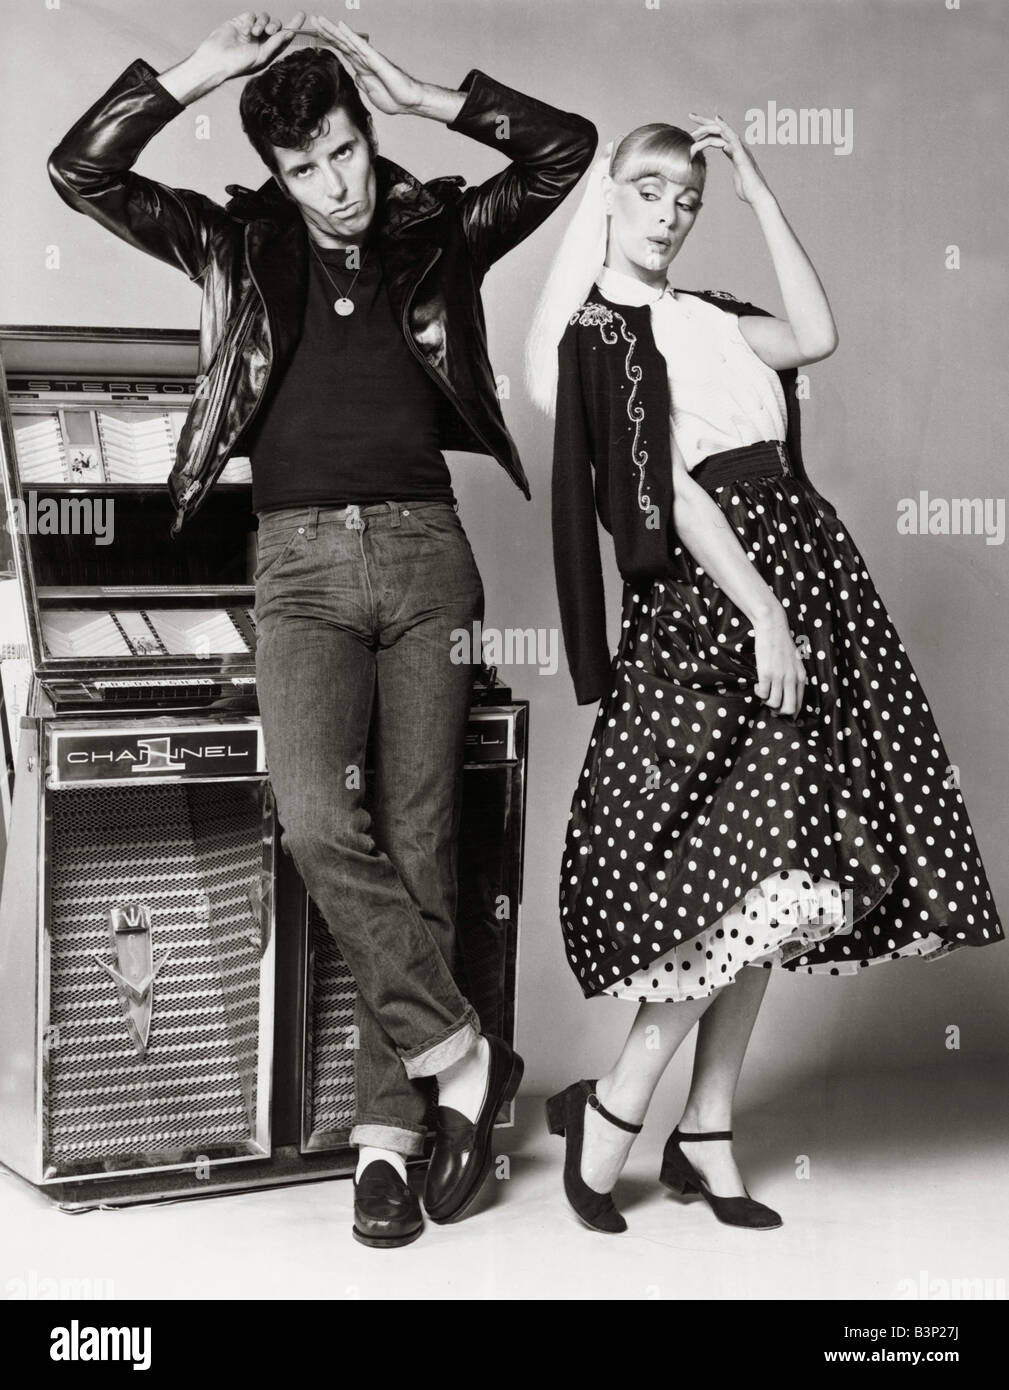 Models Posing Wearing Fifties Style Fashion Man Wearing Jeans Black T Stock Photo 19539062 Alamy